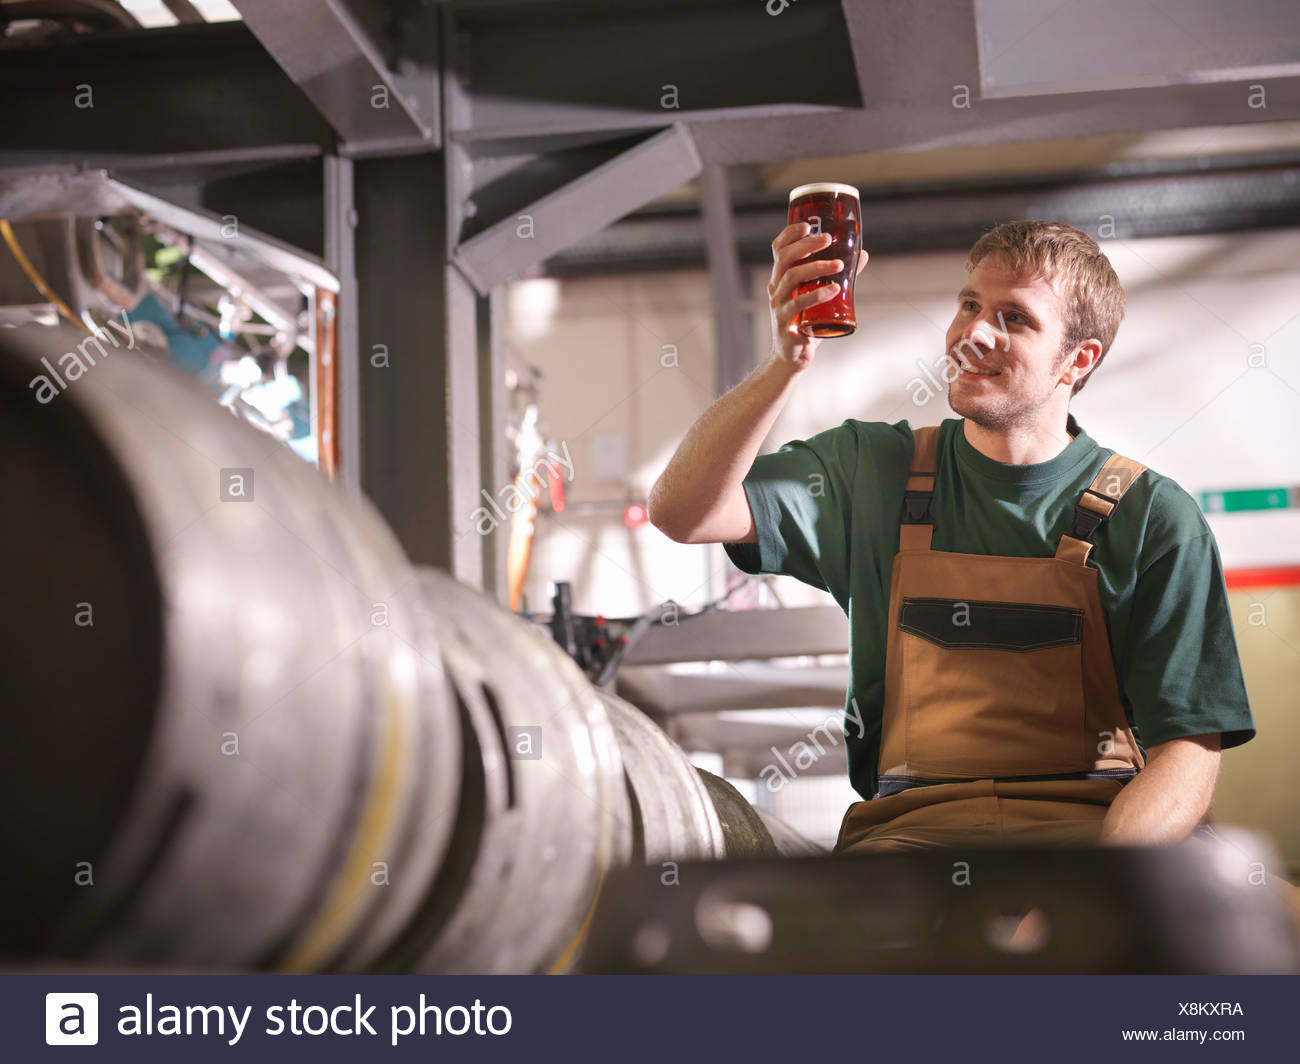 Worker holding pint of beer in brewery - Stock Image